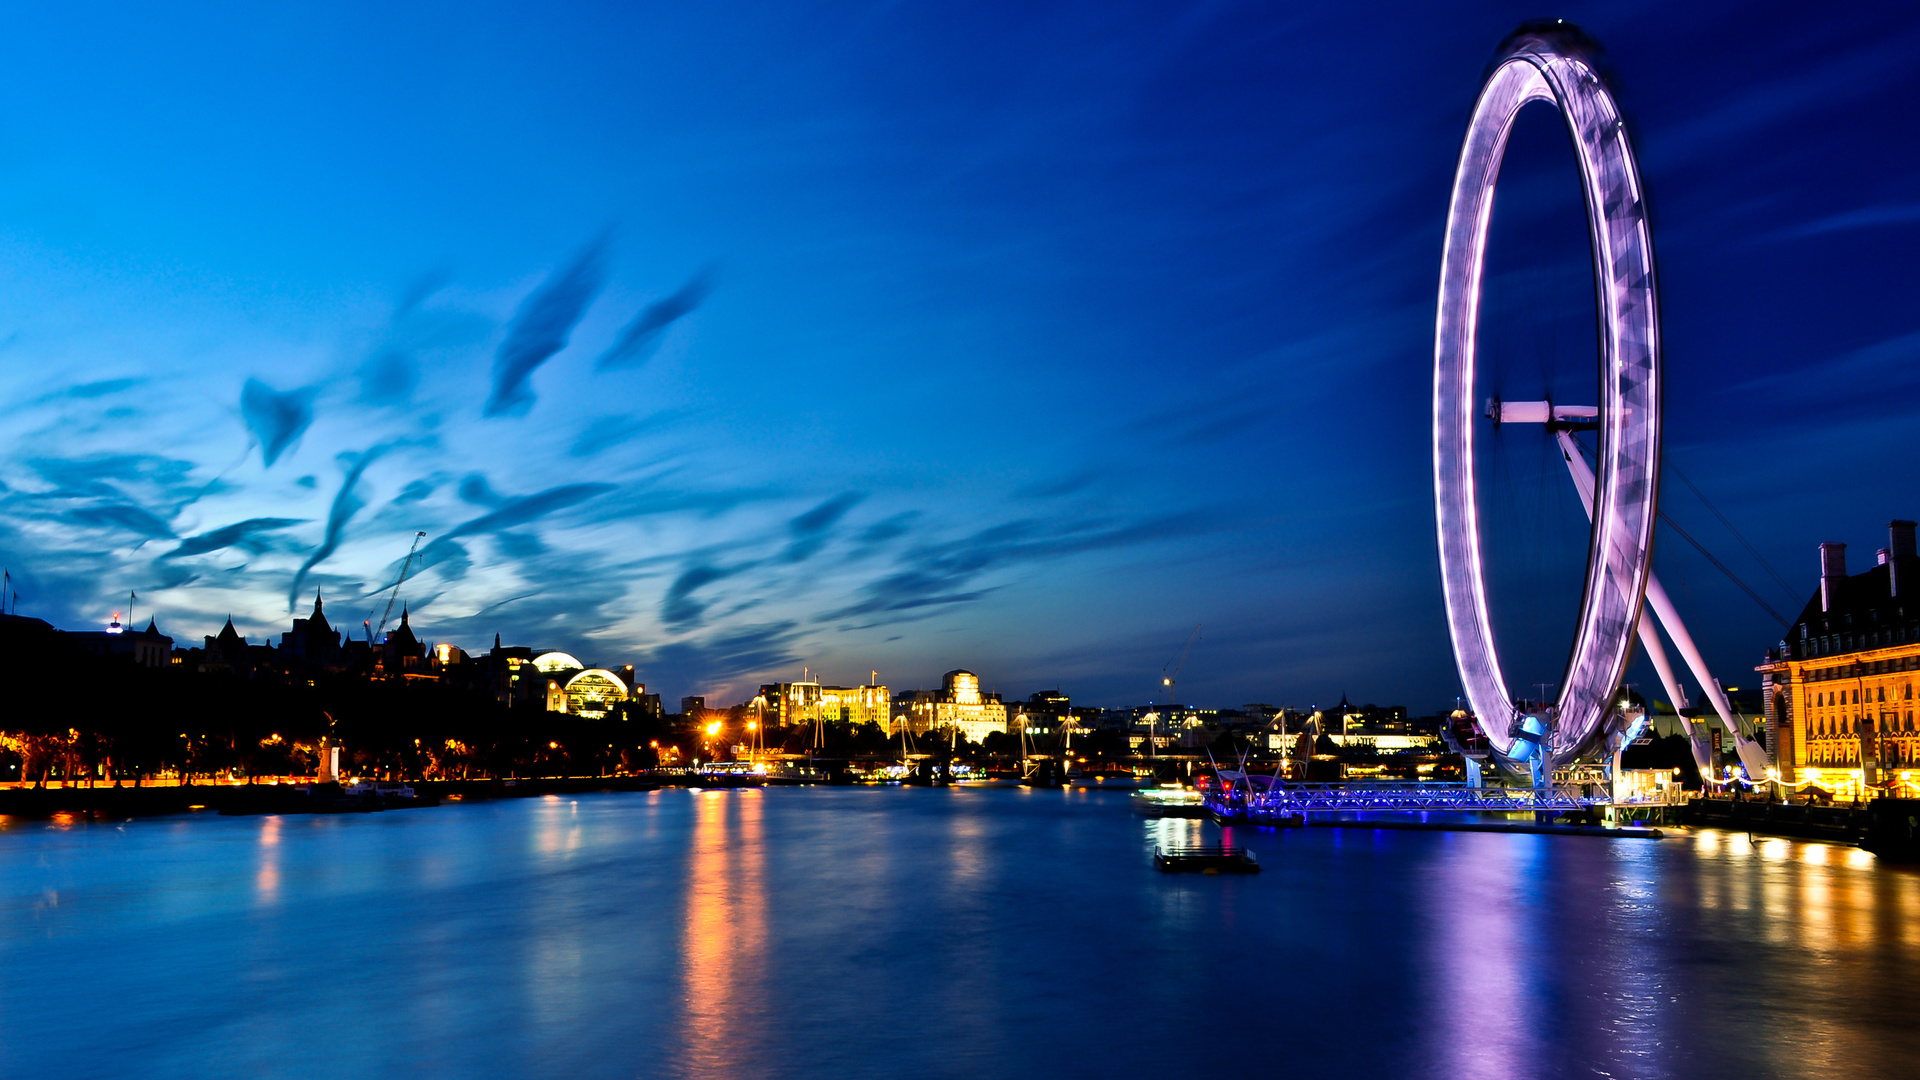 Thames uk river англия london eye england лондон